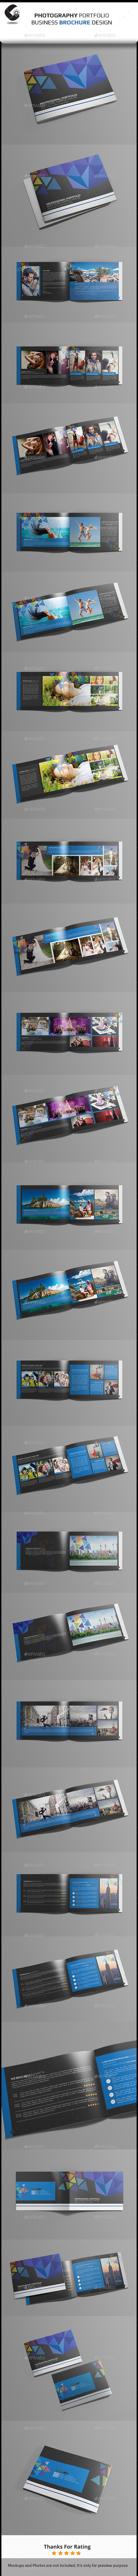 GraphicRiver Photography Portfolio Brochure 24 Pages 11179656